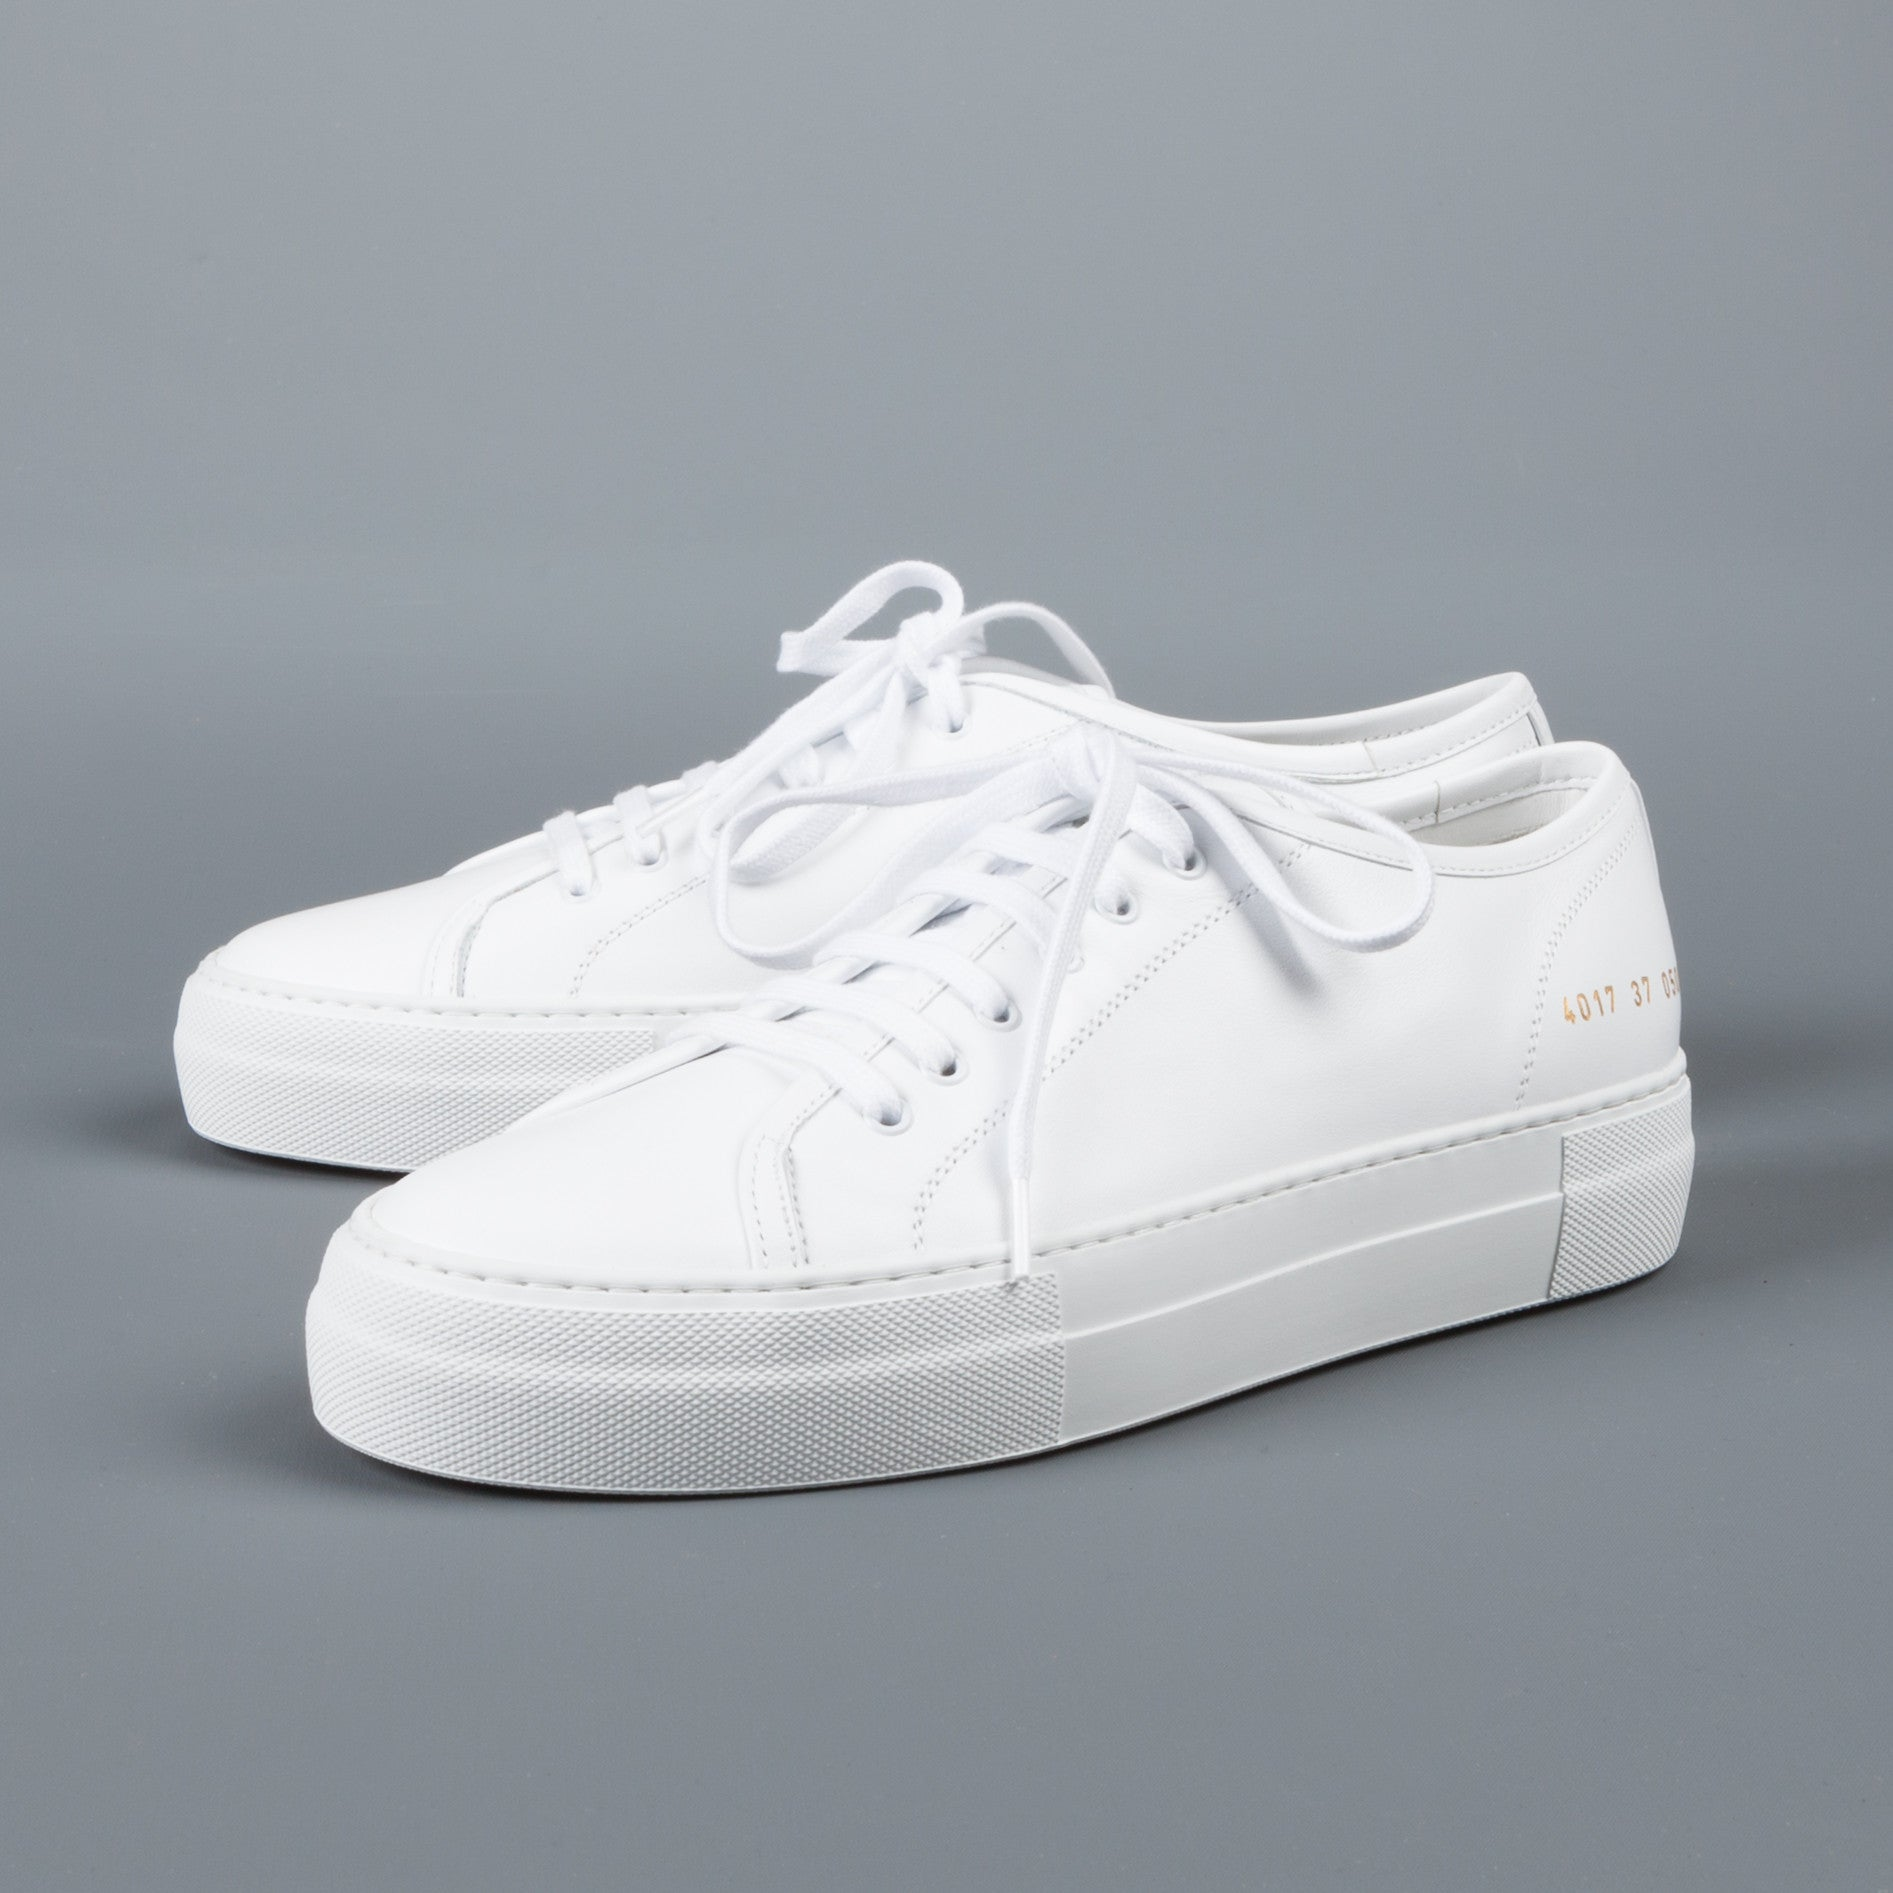 woman by common projects Shop the latest collection of common projects clothing and accessories at revolve with free 2-3 day shipping and returns, 30 day price match guarantee.